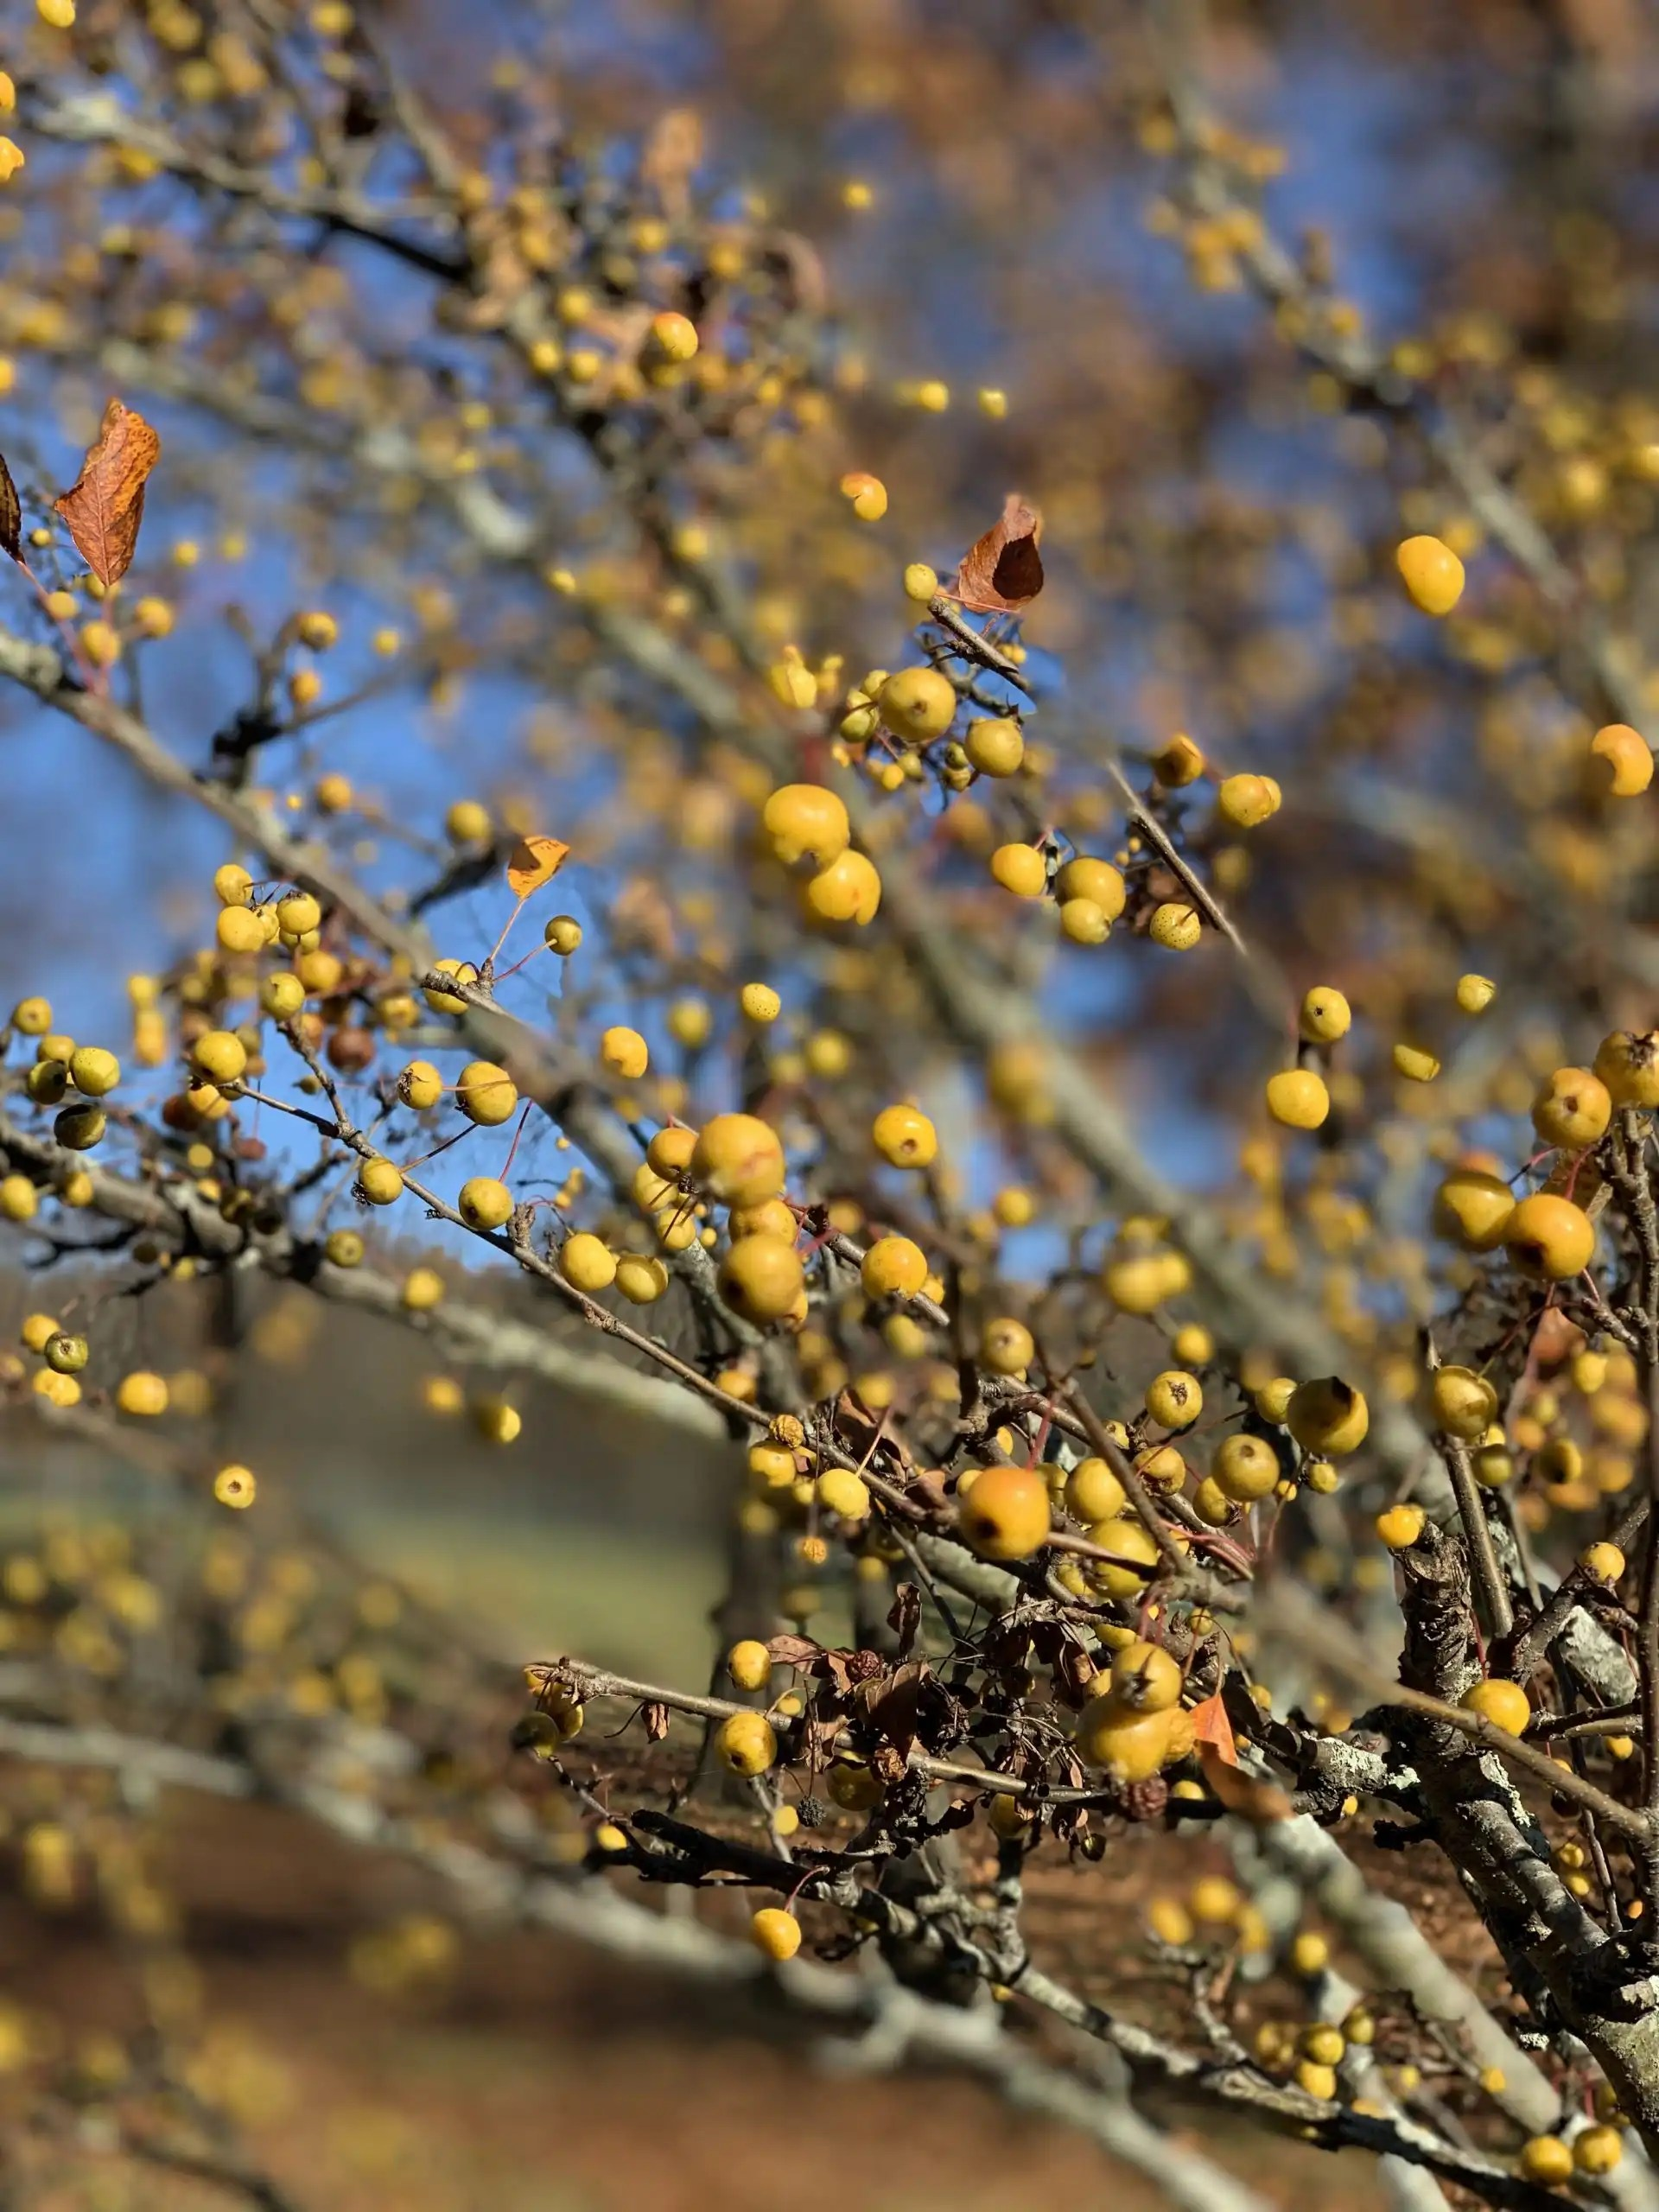 iPhone XS Max photography example: yellow berries on branches